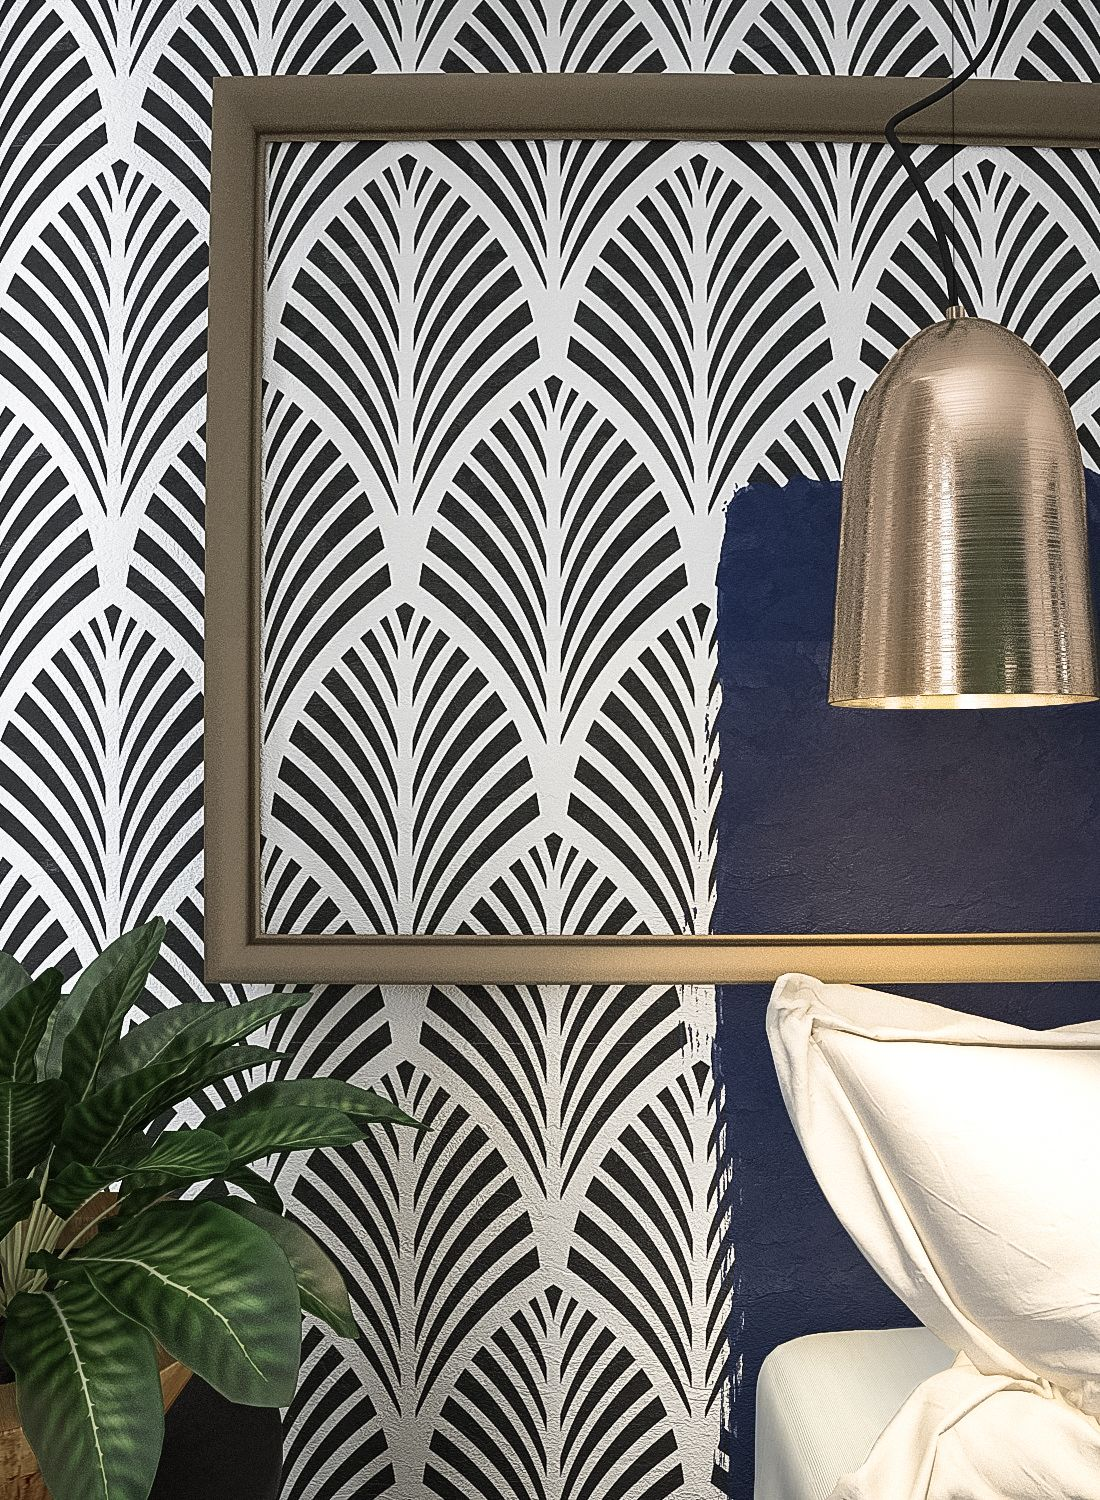 With the help of pattern wall stencils you can make the interior of your home look more saturated and exciting you can also give it a touch of romance and